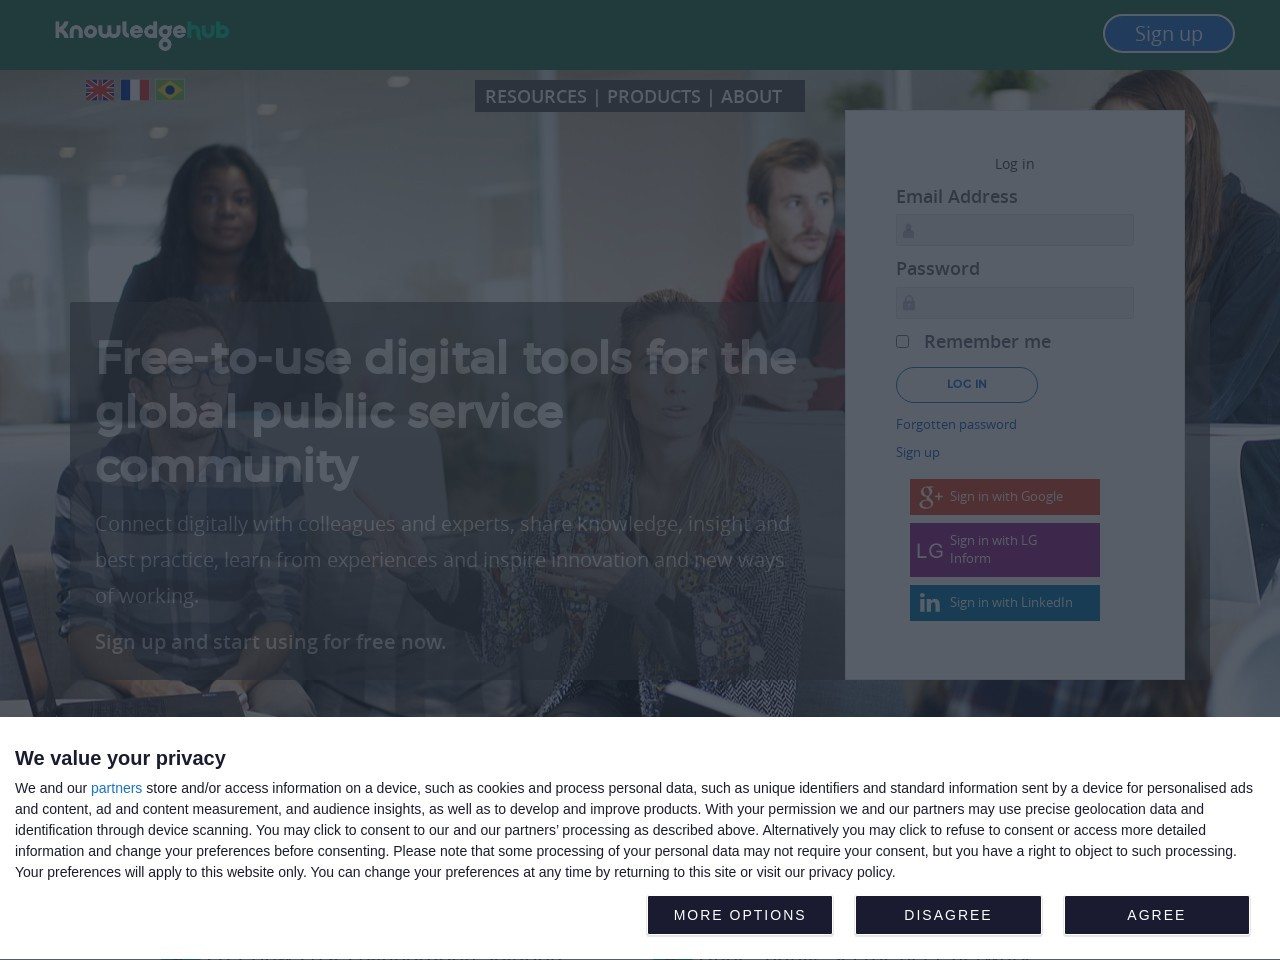 Creativity and innovation uncovered – Knowledge Hub